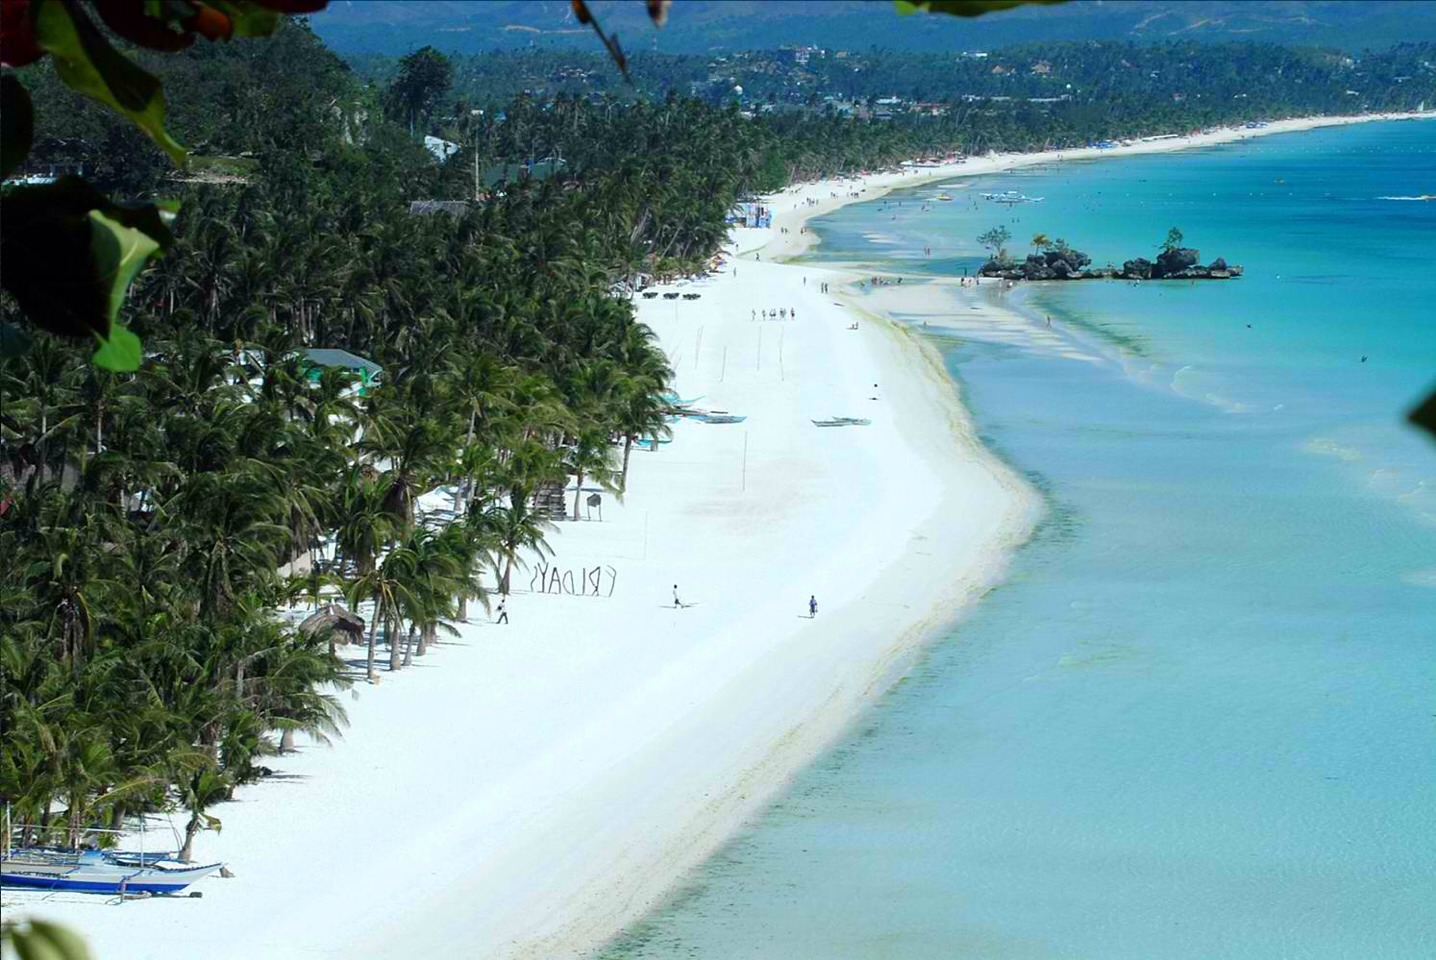 Boracay is also well known for its now very rare gleaming white puka shells, said to be the best in the world.